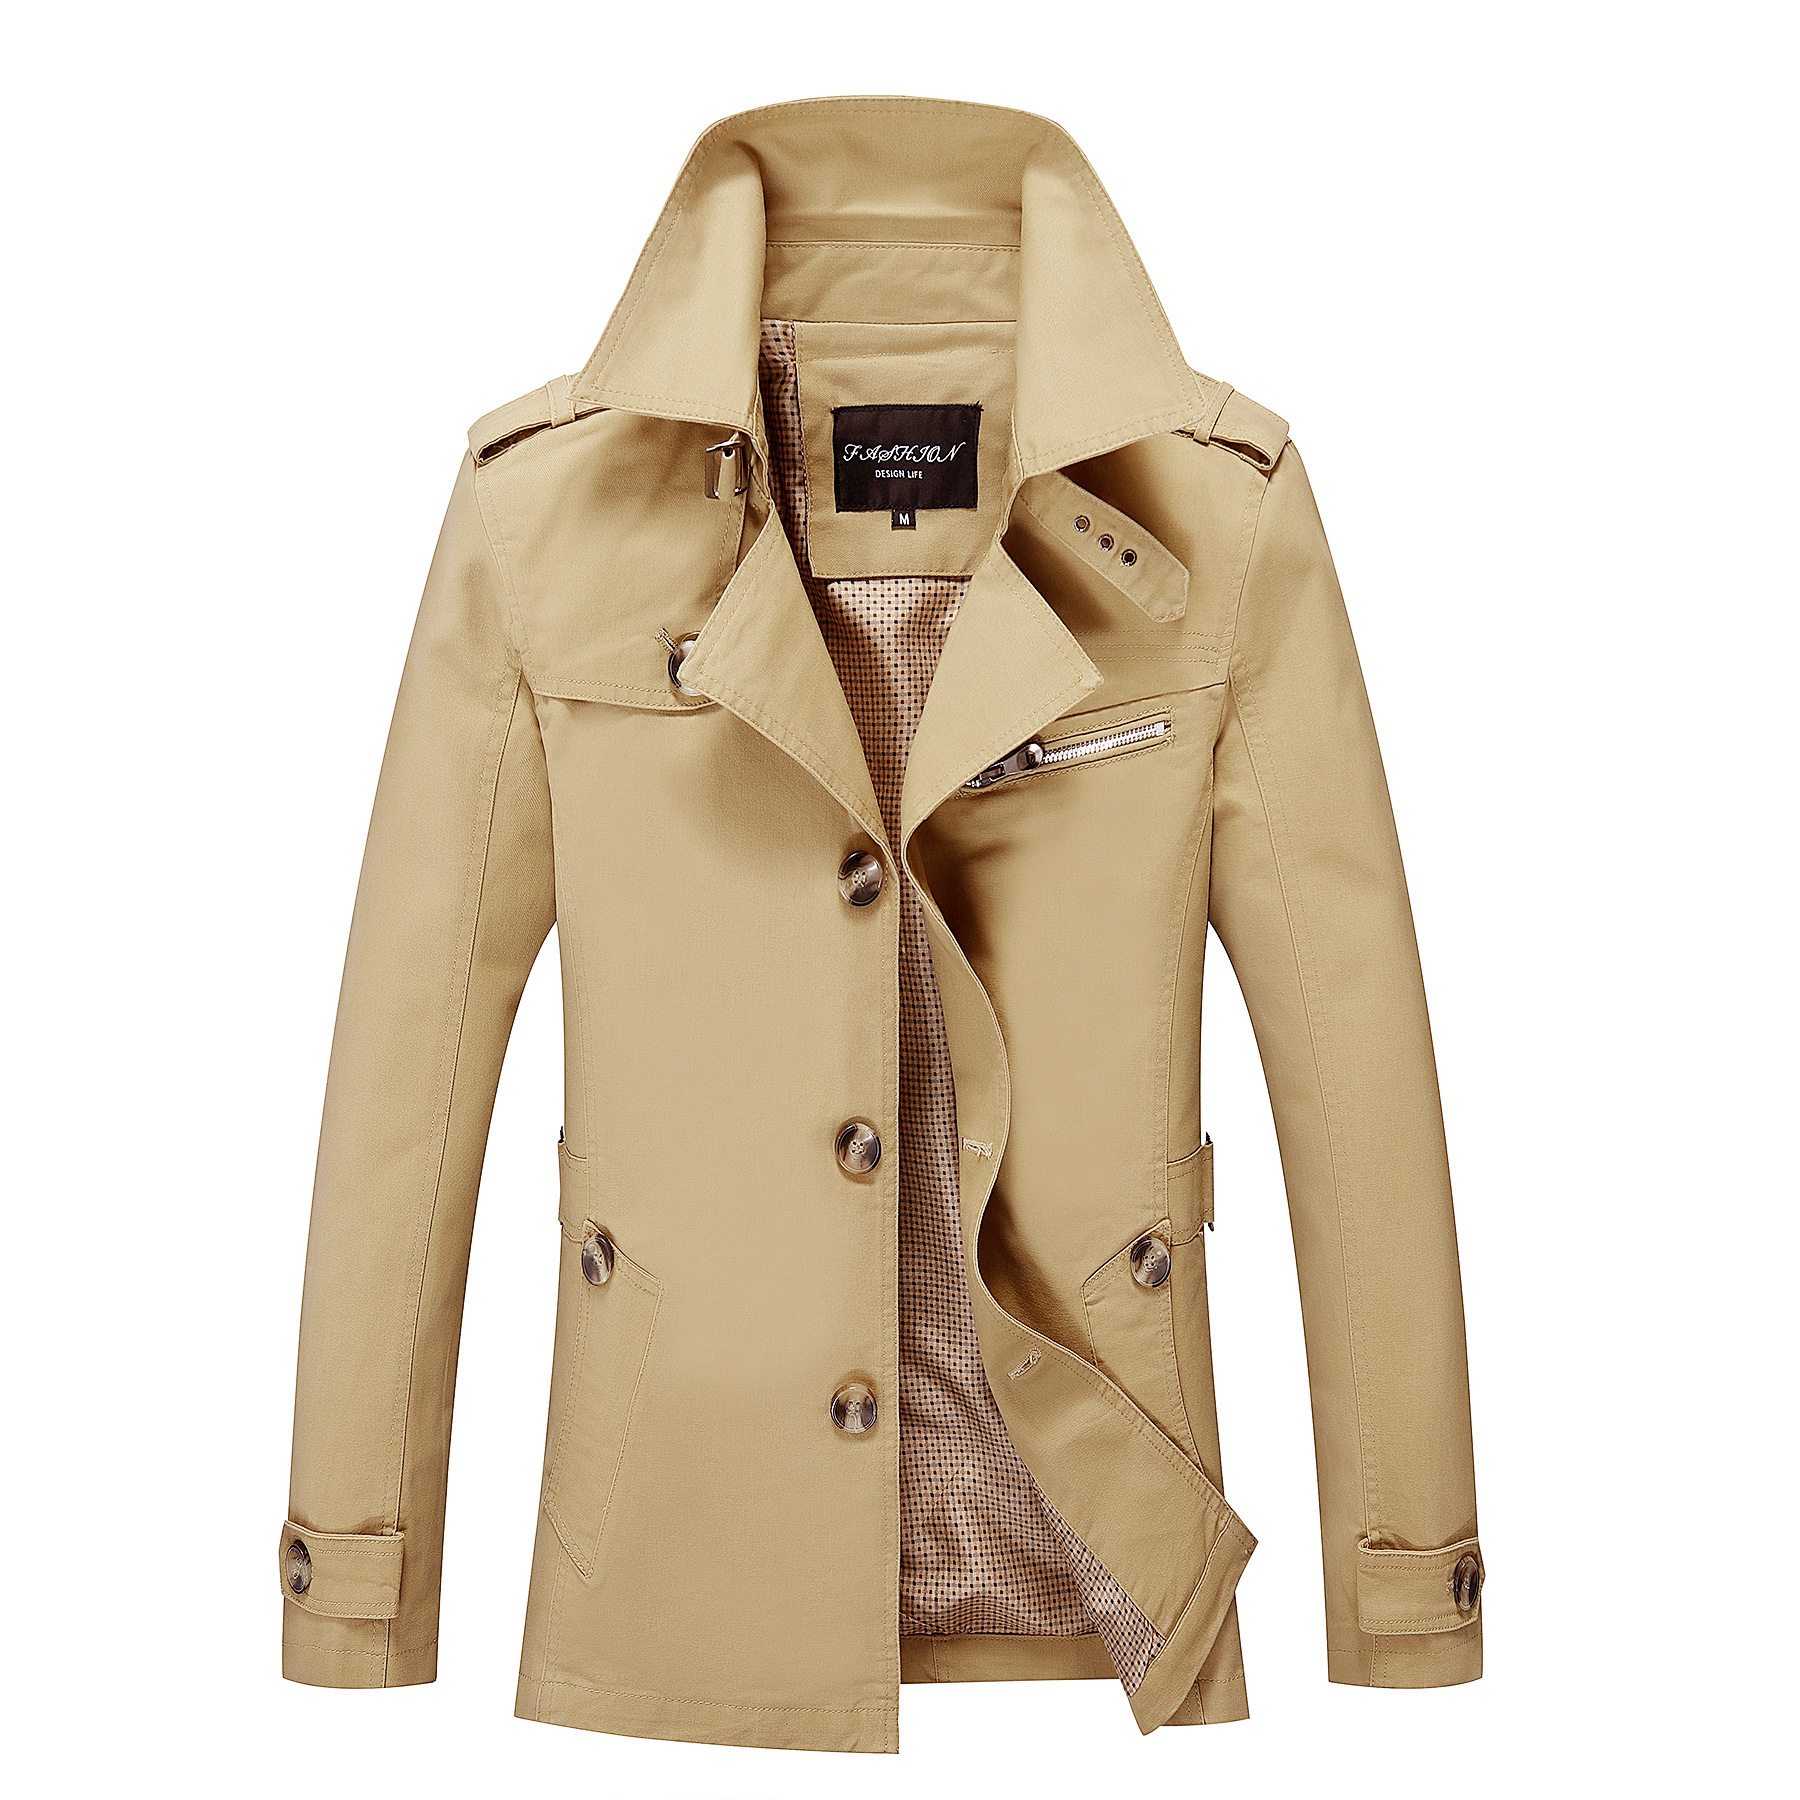 Man Cotton Smart Casual Slim Fit Design Office Jackets Overcoat Plus Size M-5XL Spring Autumn Men's Long Thin Trench Coats